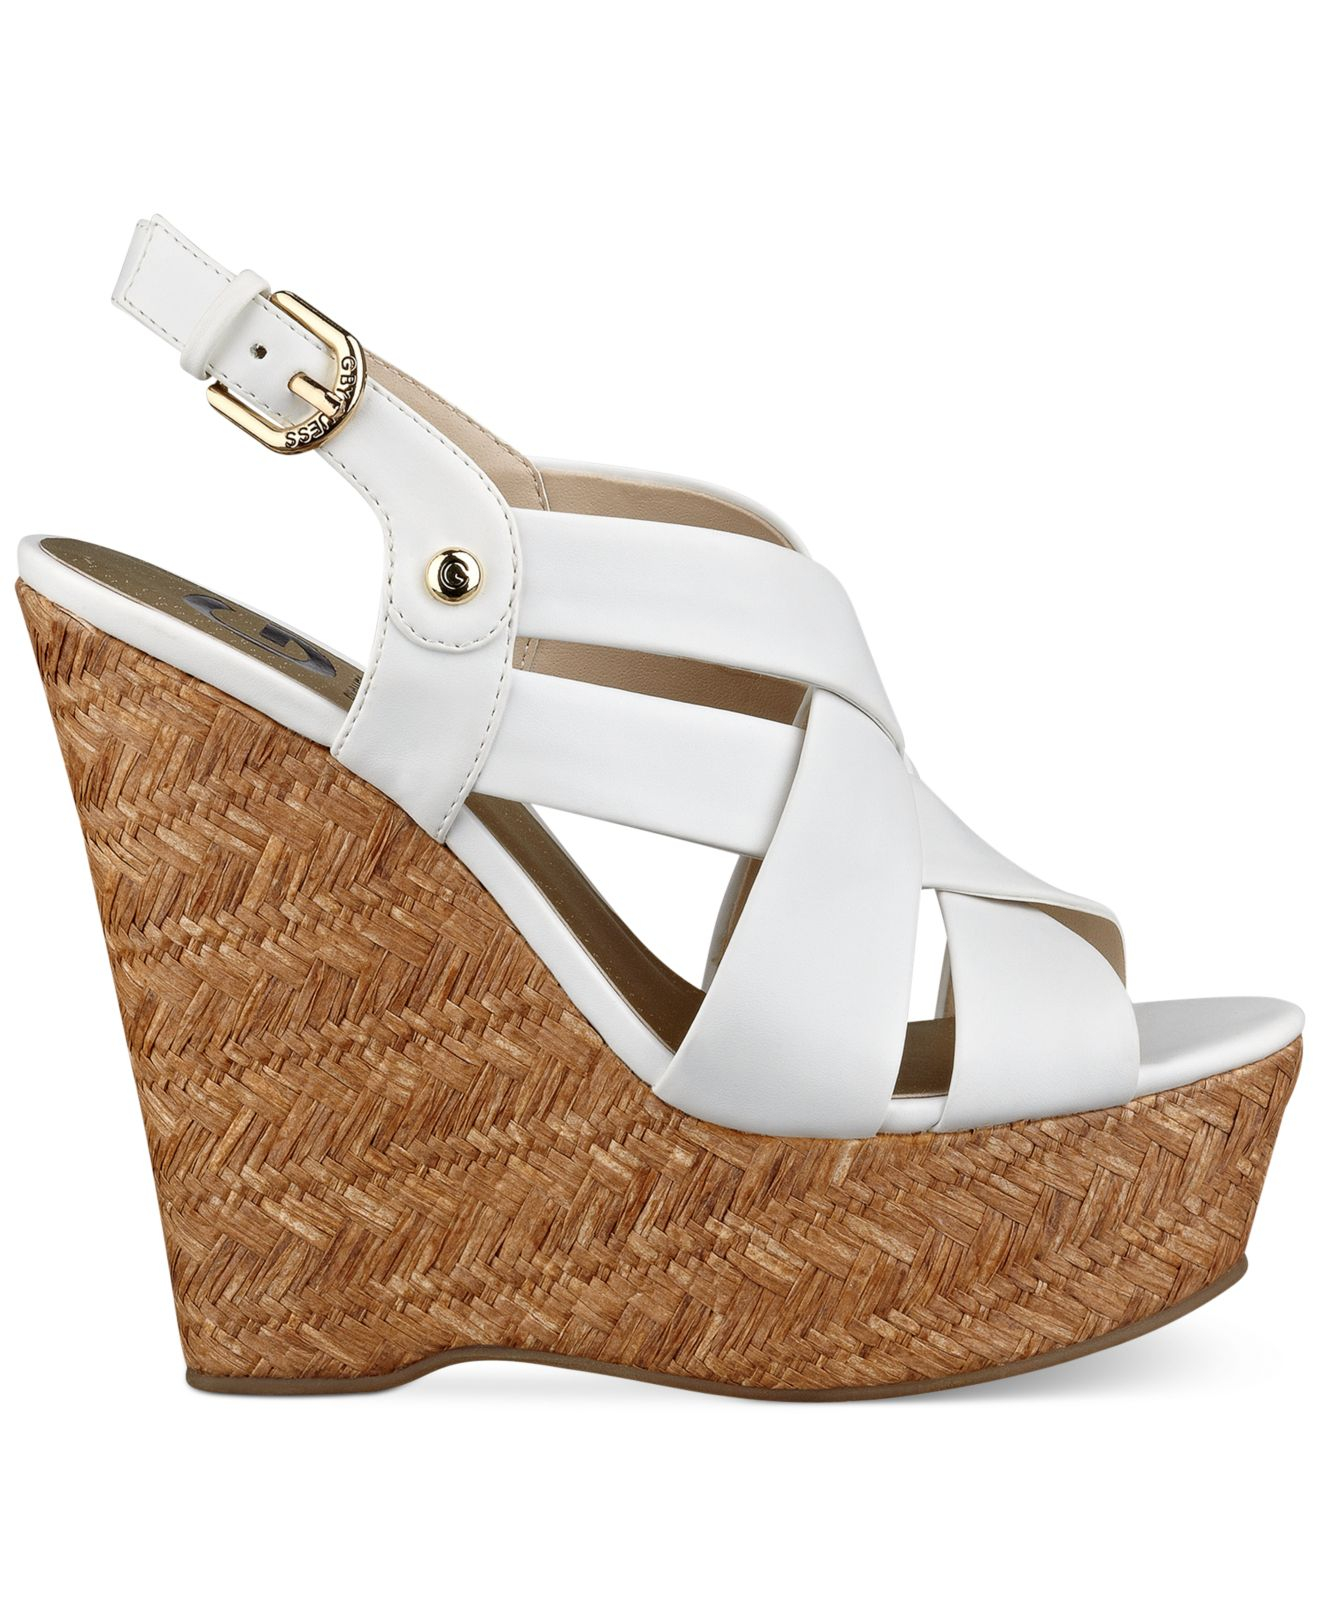 18c6464344 G by Guess Women'S Havana Platform Wedge Sandals in White - Lyst